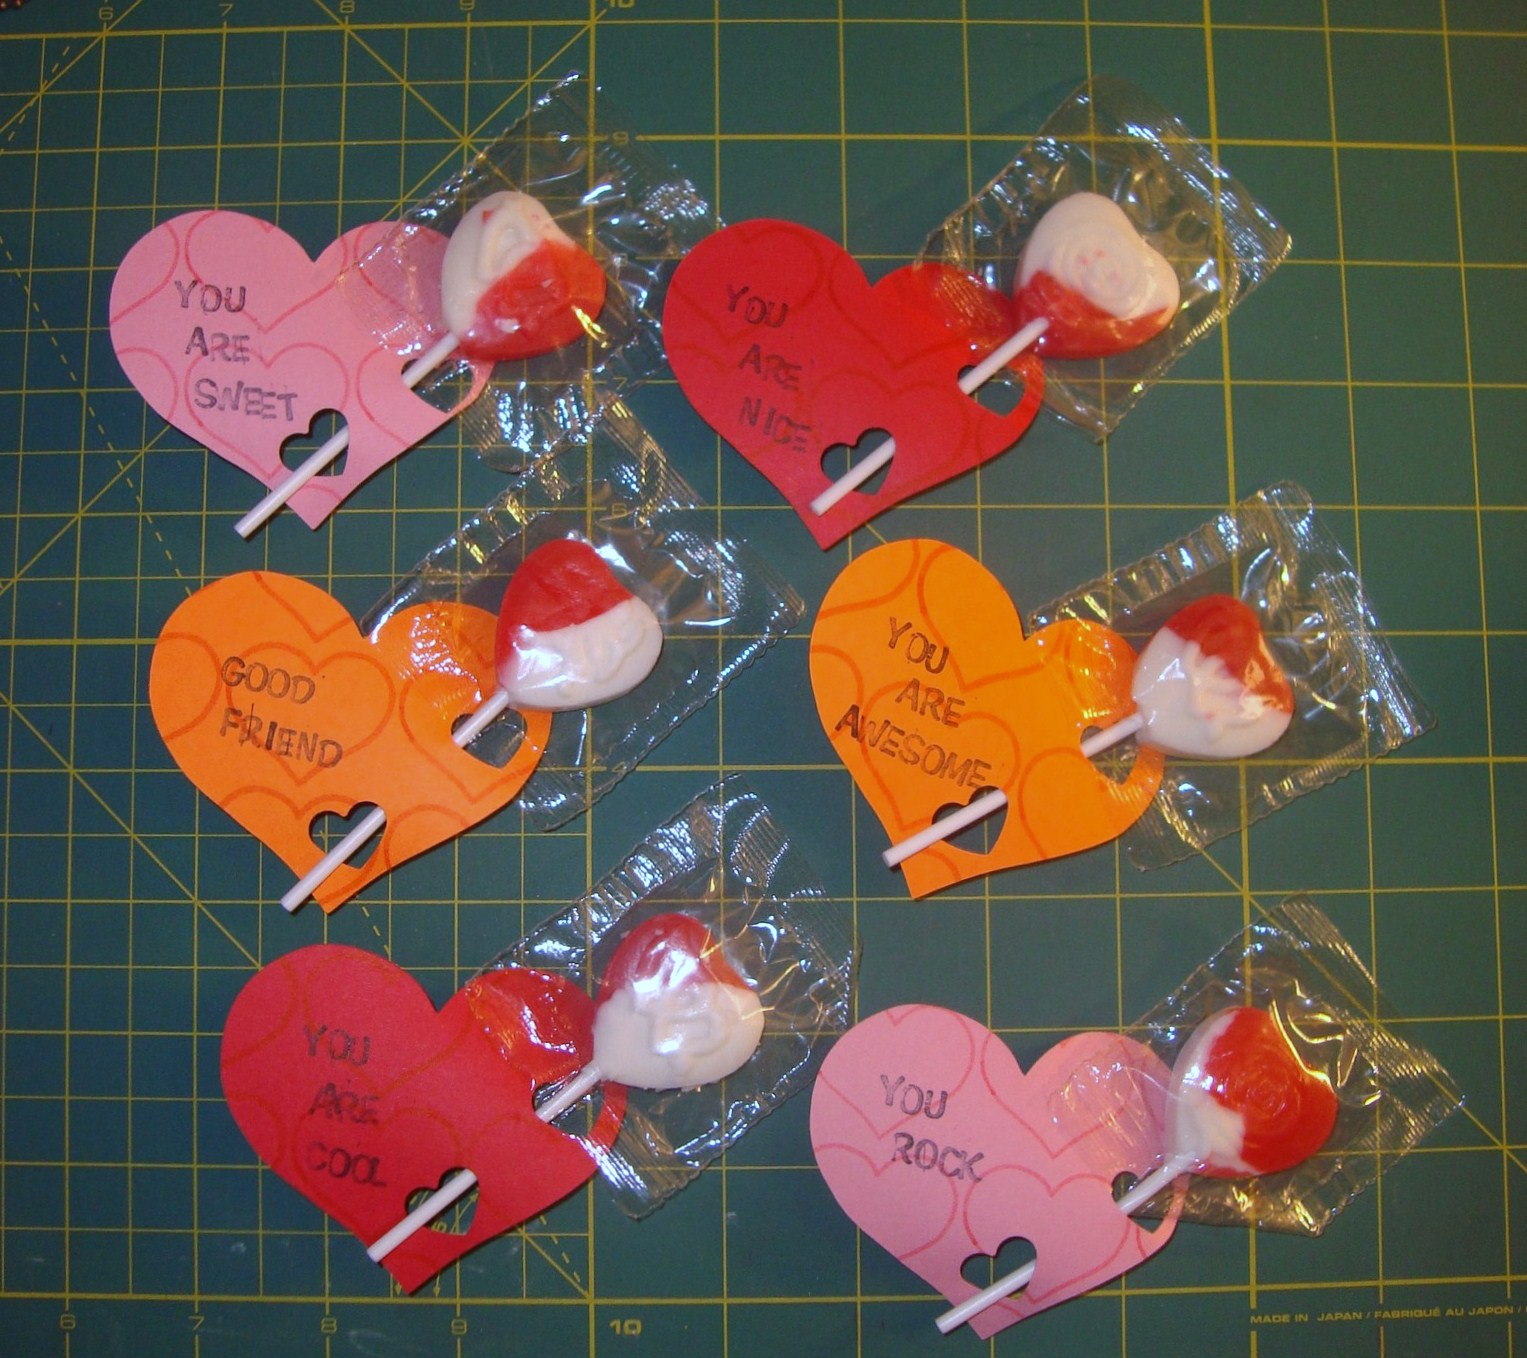 Handmade Happiness Kids Valentines Cards with the Cricut – How to Make Valentine Cards for School